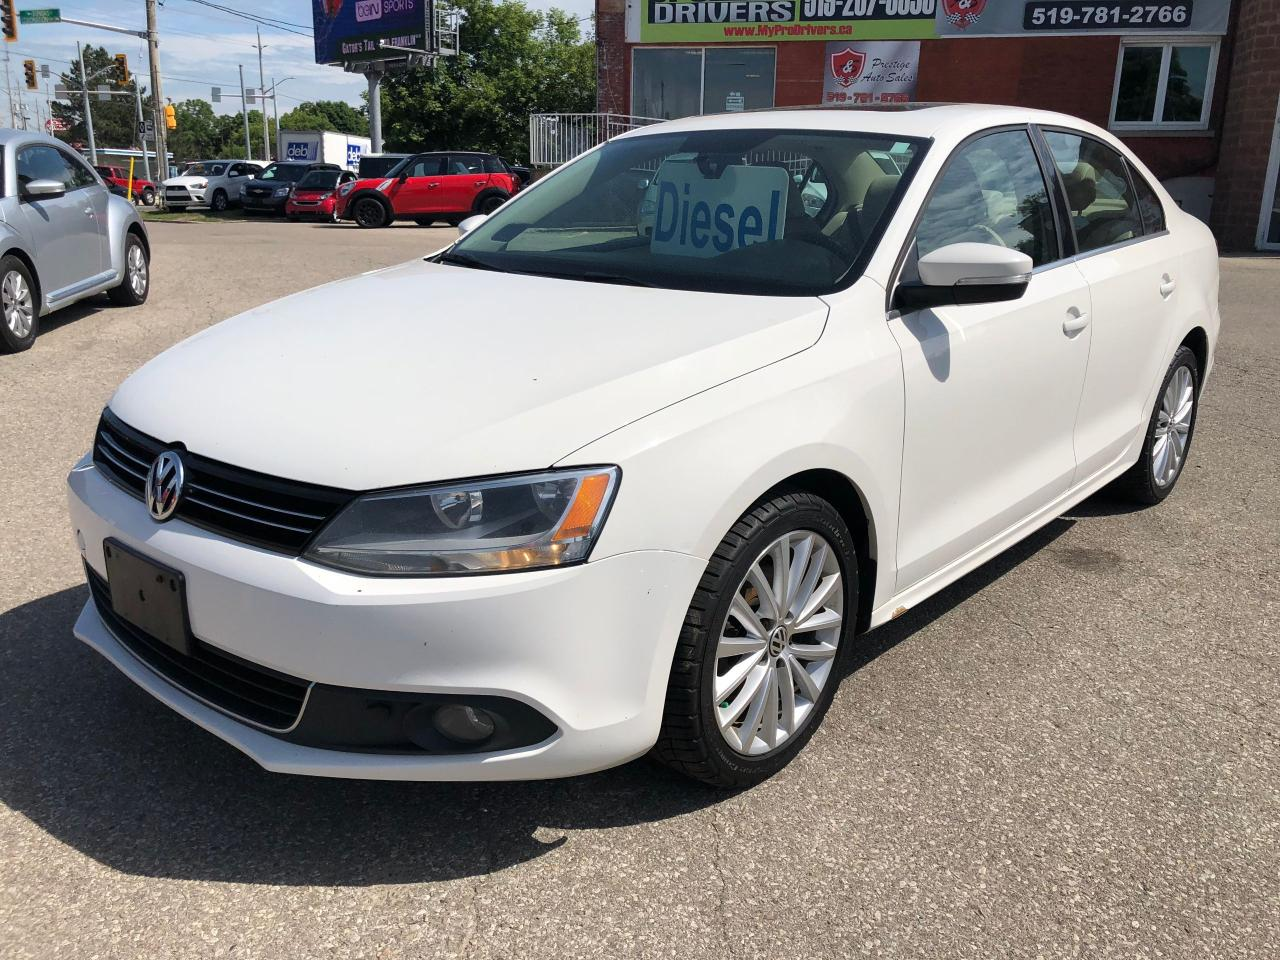 north tdi blue lot on il en chicago left salvage sale copart jetta auto view for volkswagen in online auctions certificate carfinder